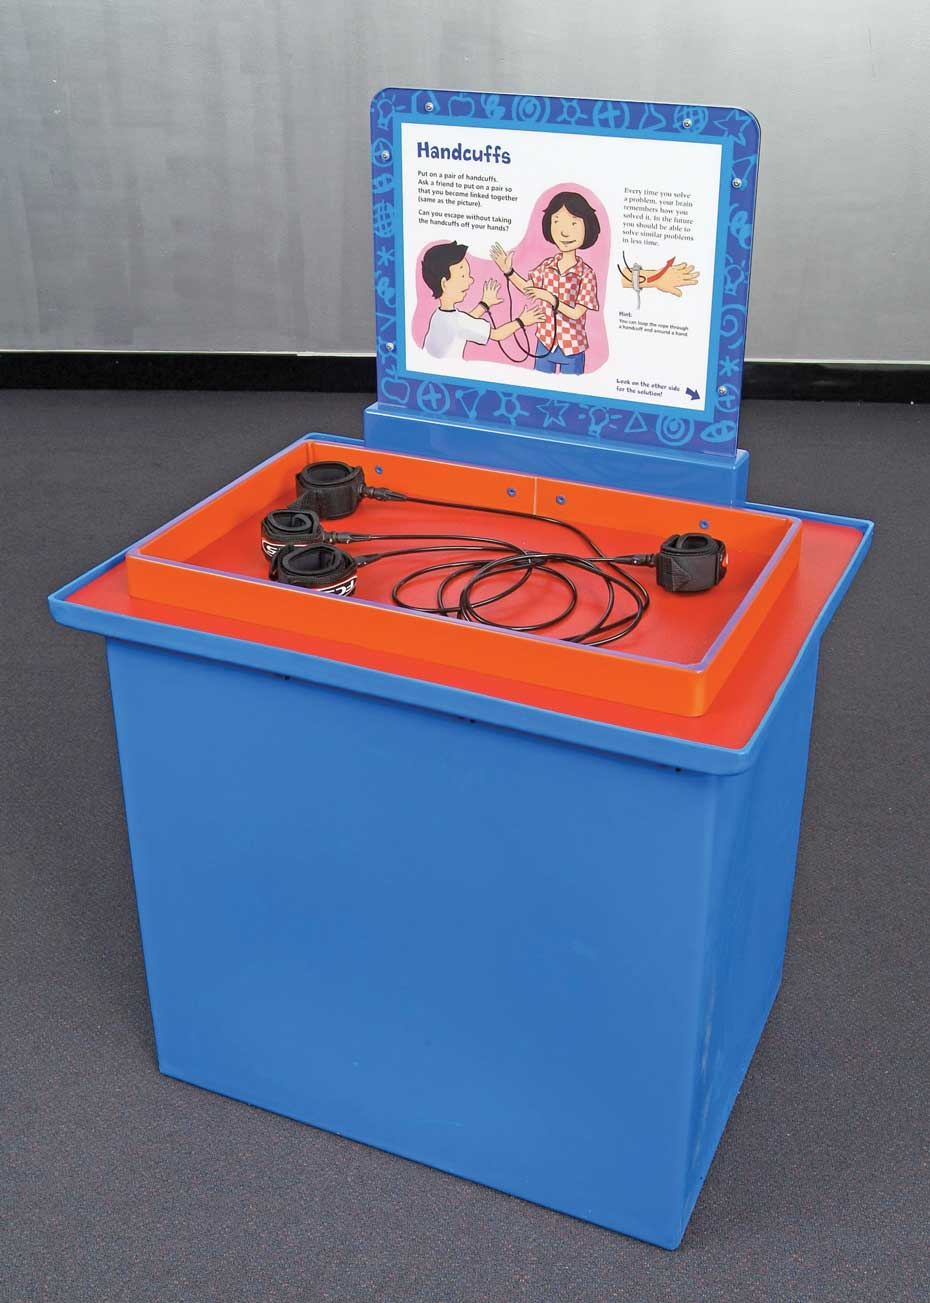 A blue and orange exhibit table with a white and blue information panel behind it. On top of the table is an orange tray with four black velcro handcuffs that have cords between them.